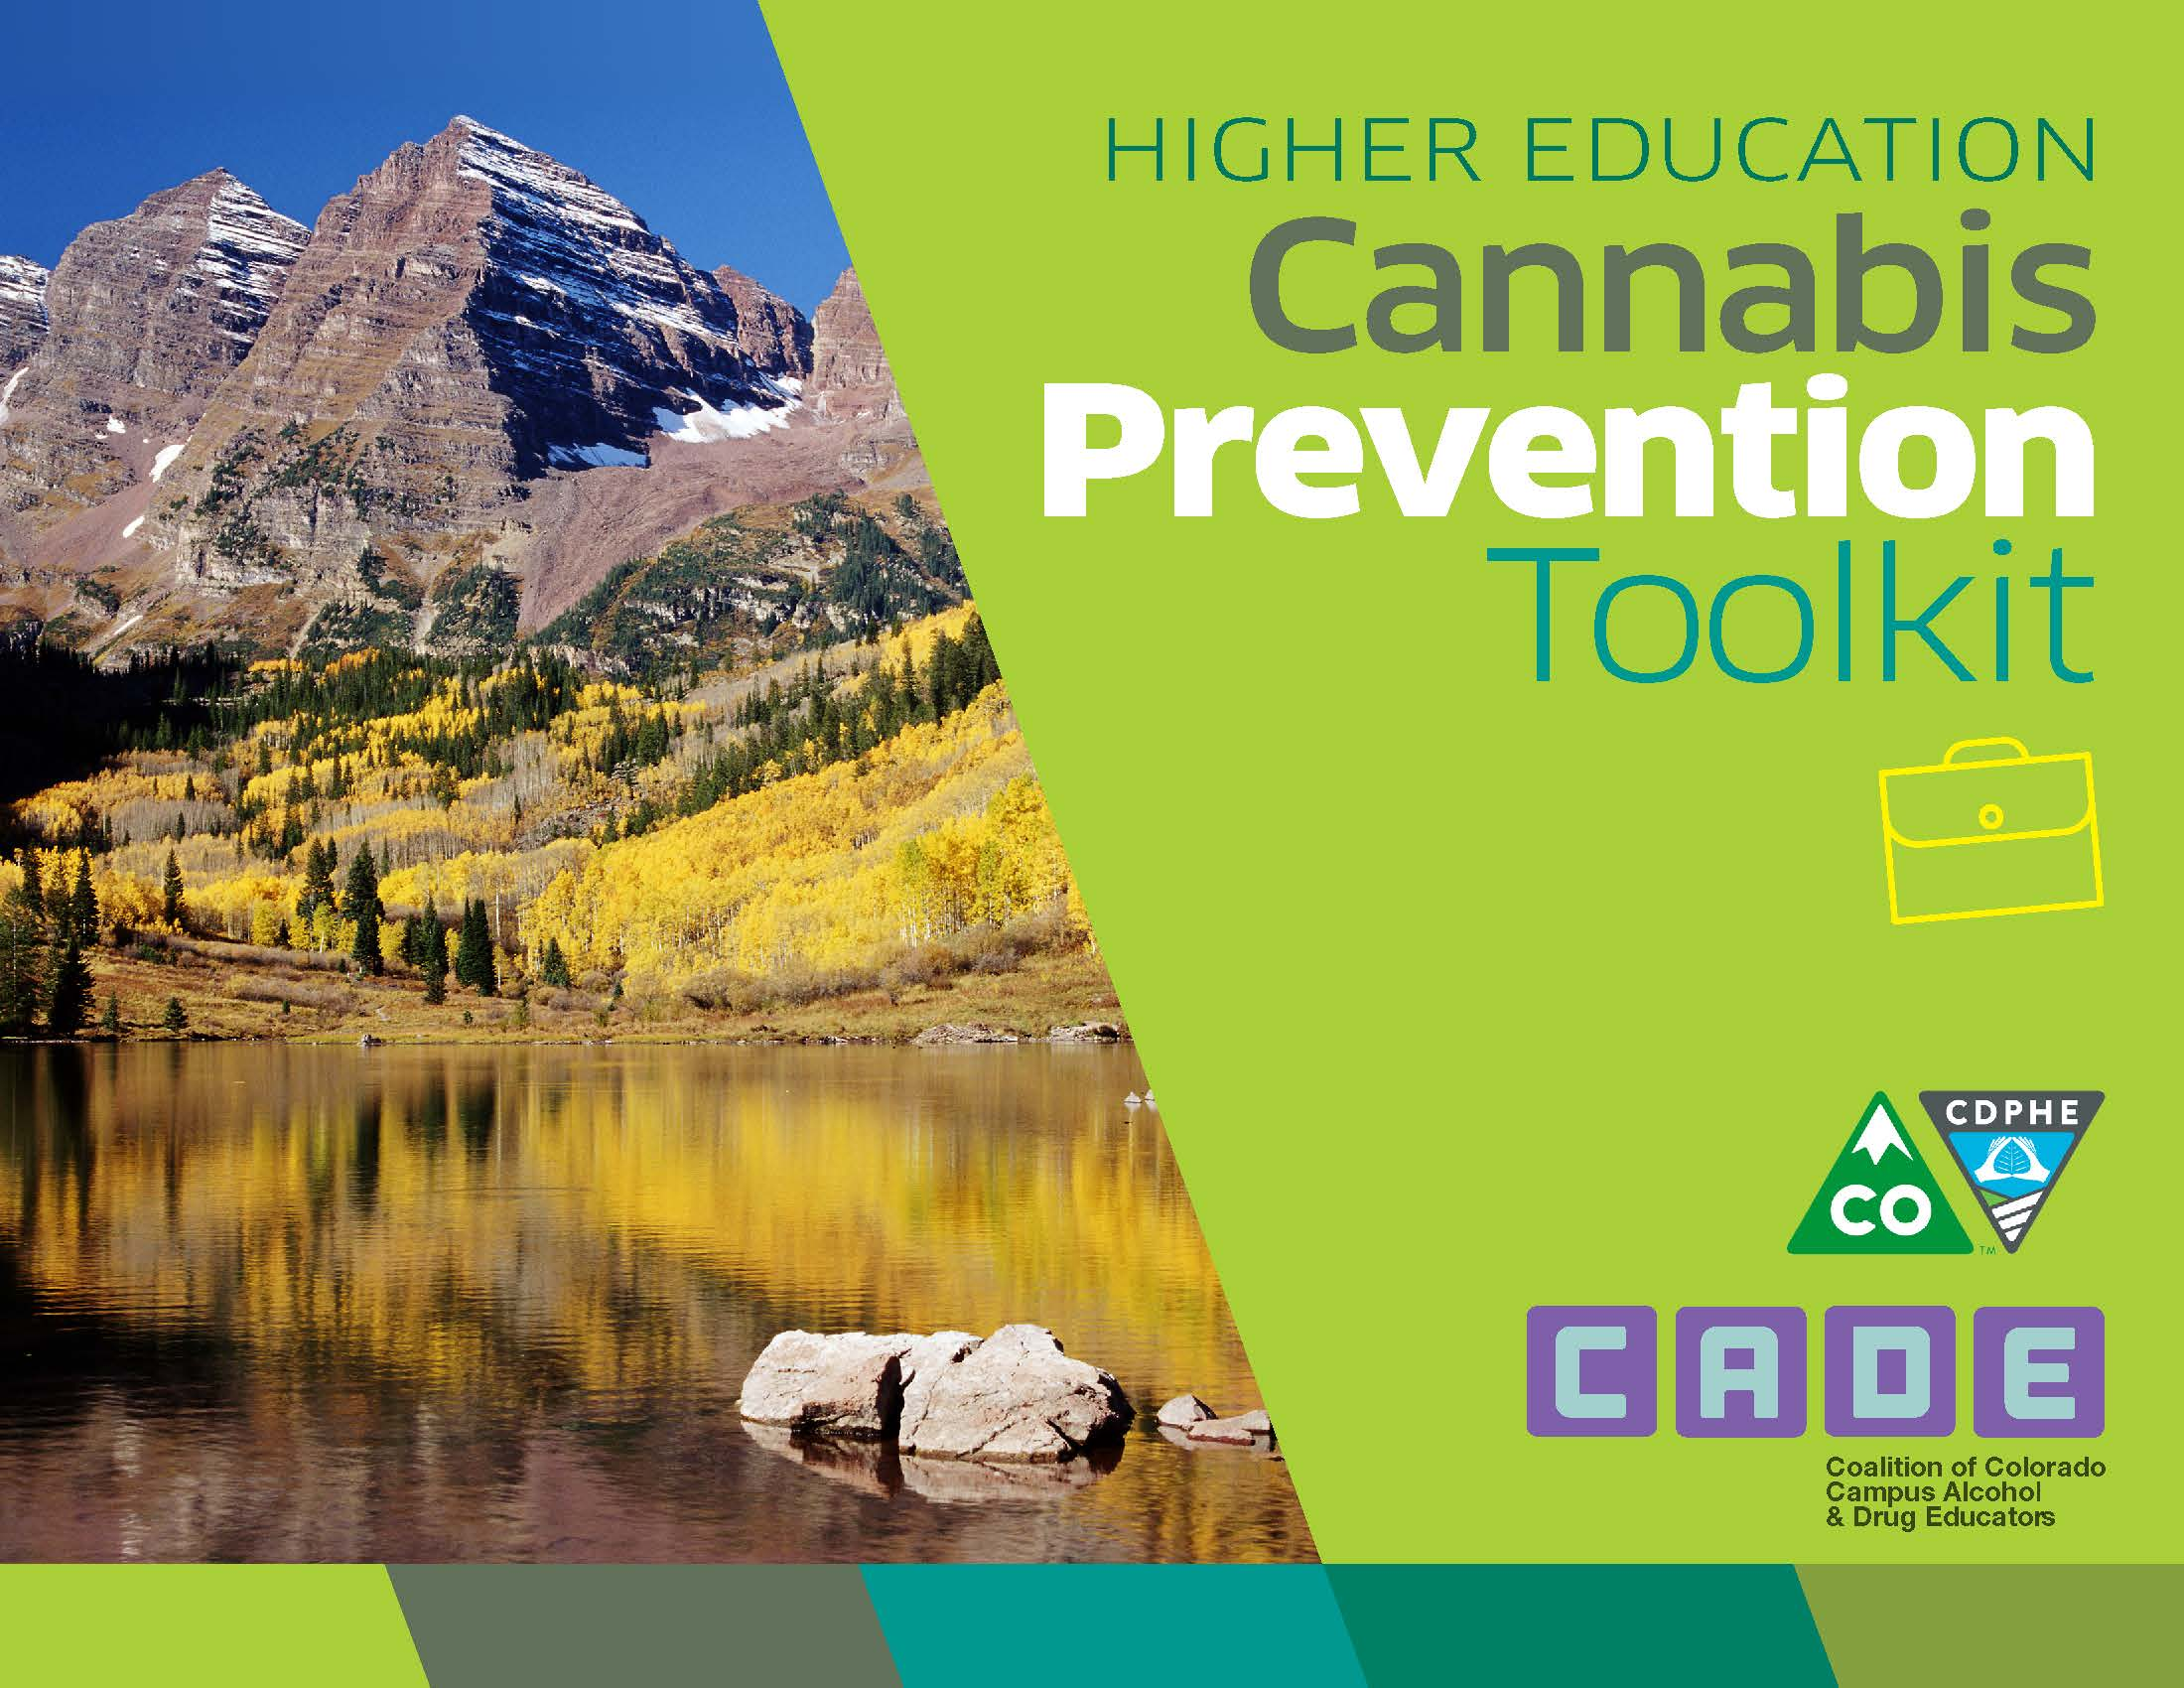 Higher Education Cannabis Toolkit